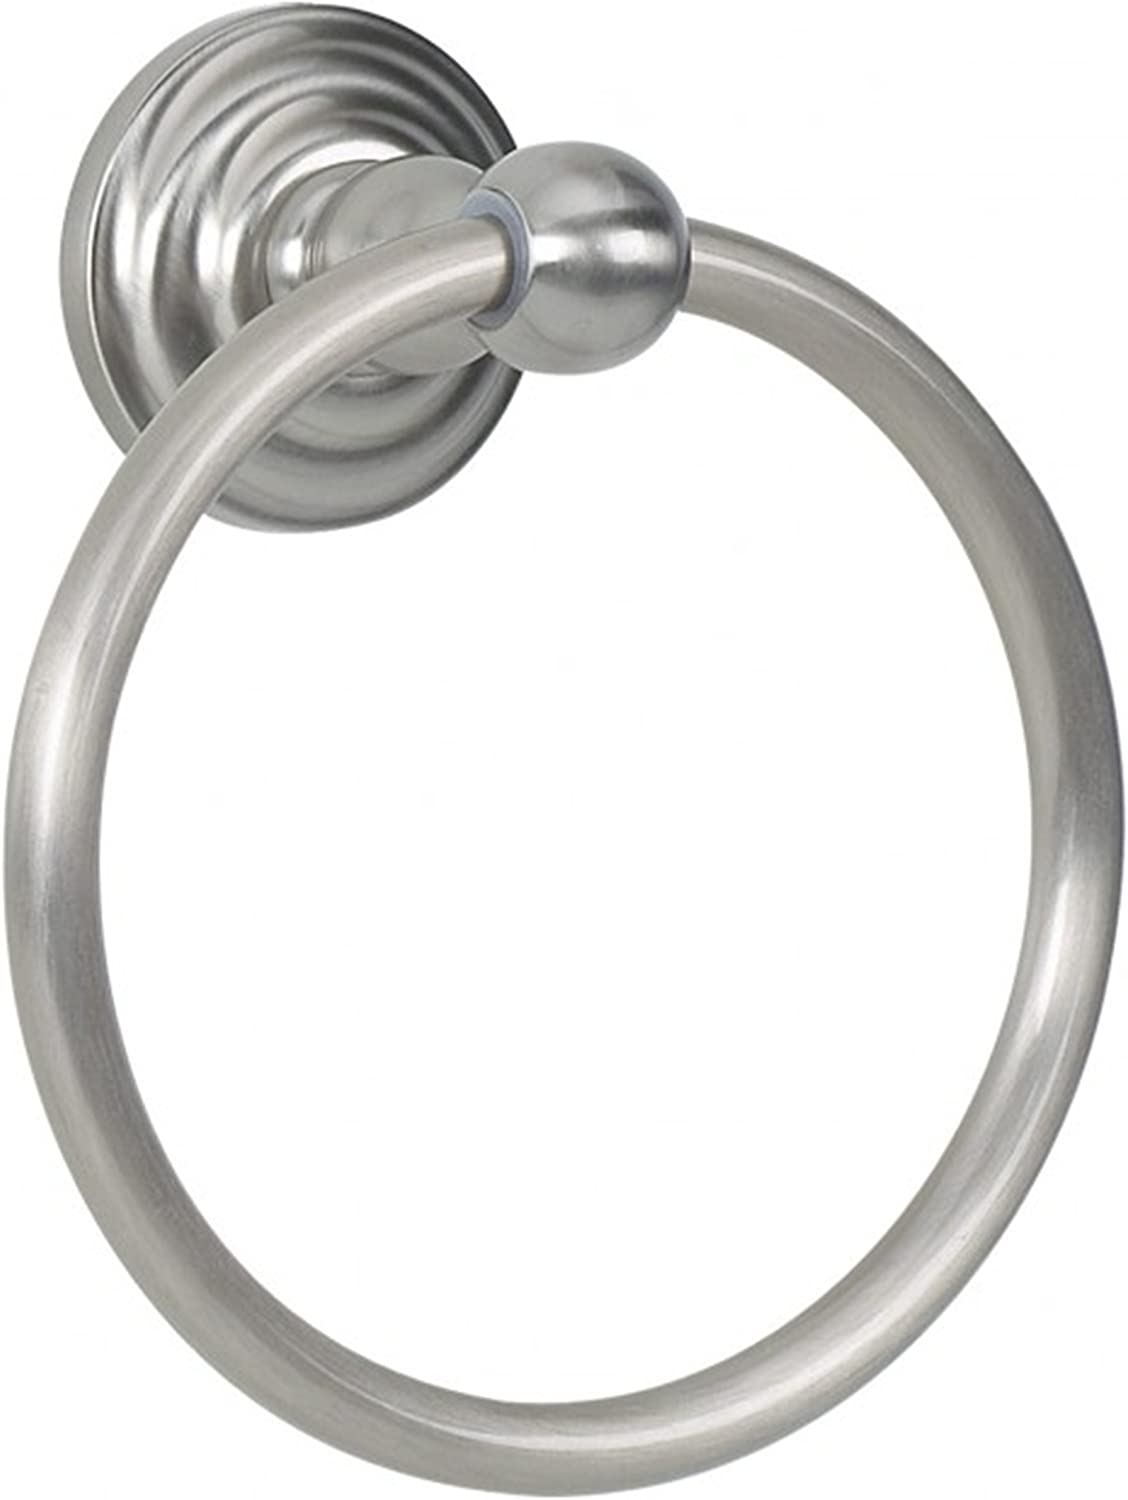 Taymor 04-6204 Brentwood Max 67% OFF Series Chrome Polished Towel Beauty products Ring